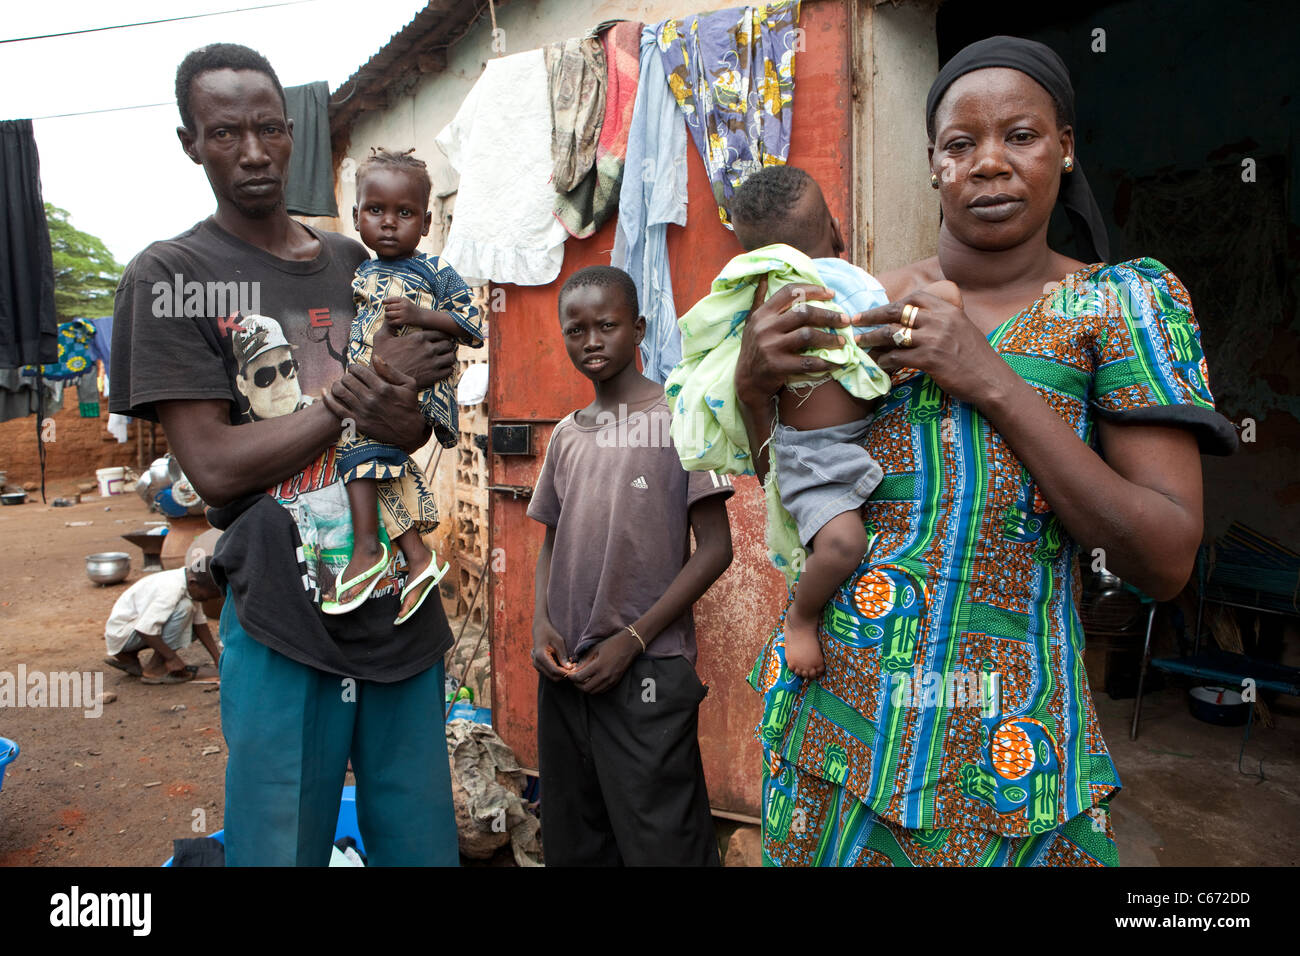 A family stands outside their house in a slum in Bamako, Mali, West Africa. - Stock Image